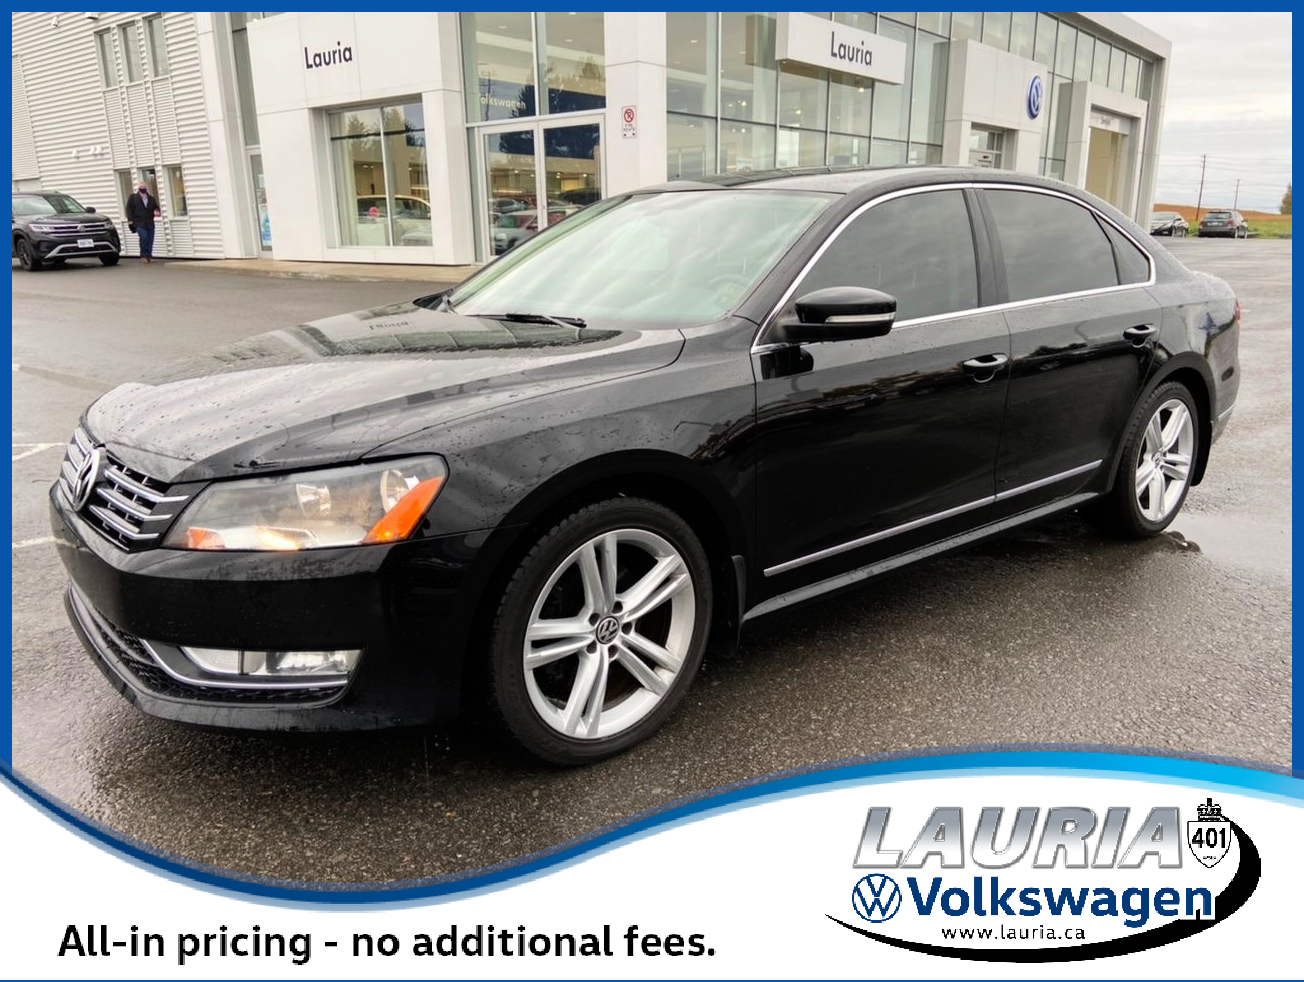 Certified Pre-Owned 2015 Volkswagen Passat Highline Manual - LOADED